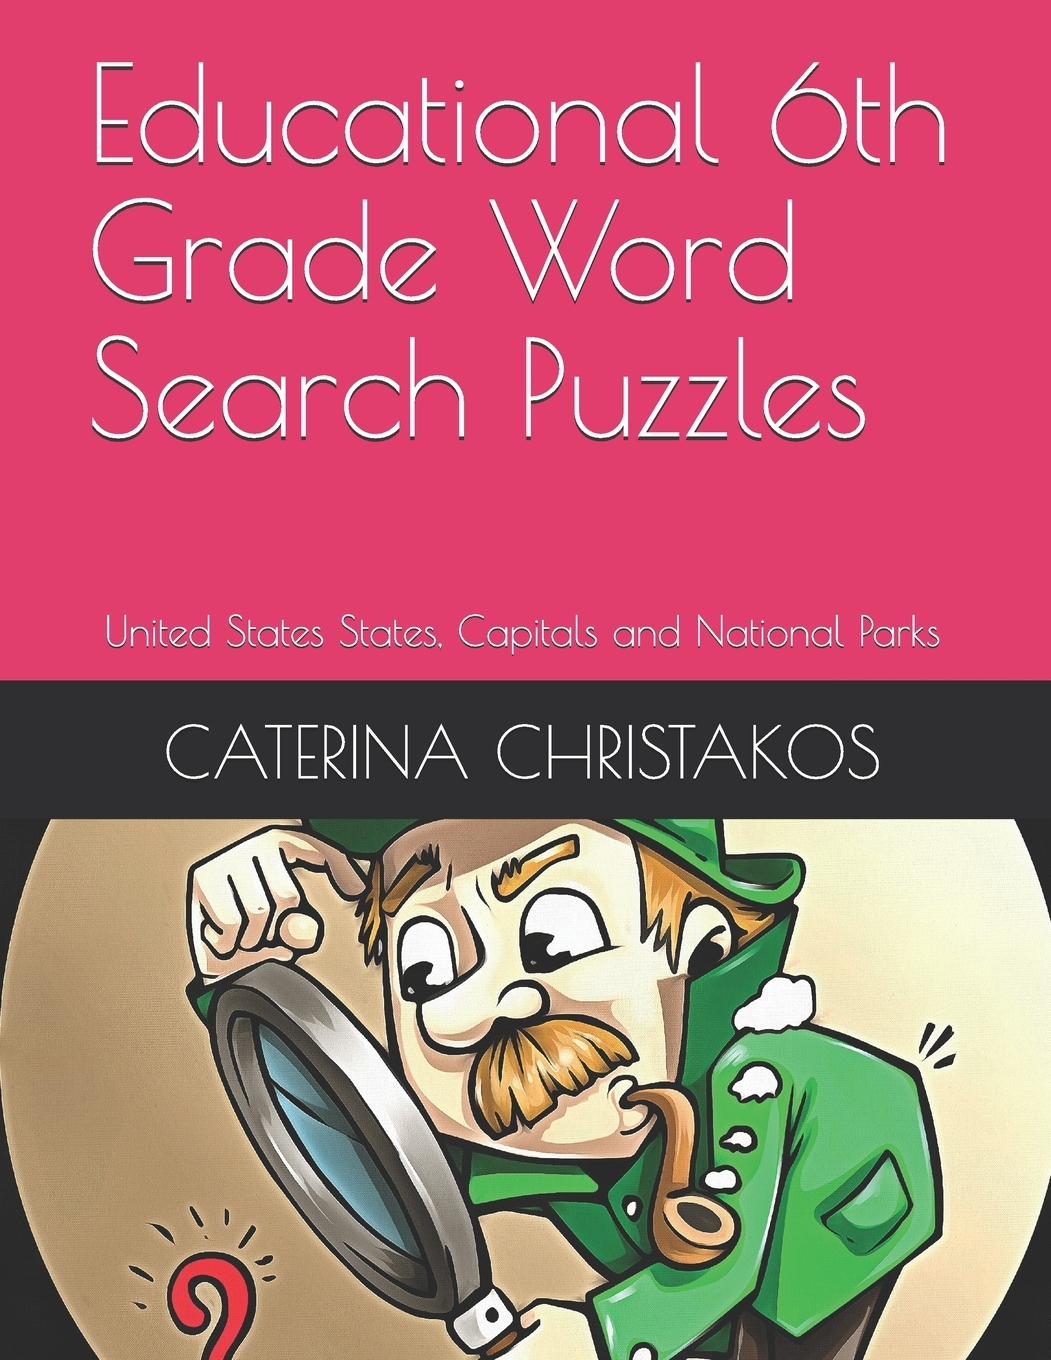 Educational 6th Grade Word Search Puzzles United States